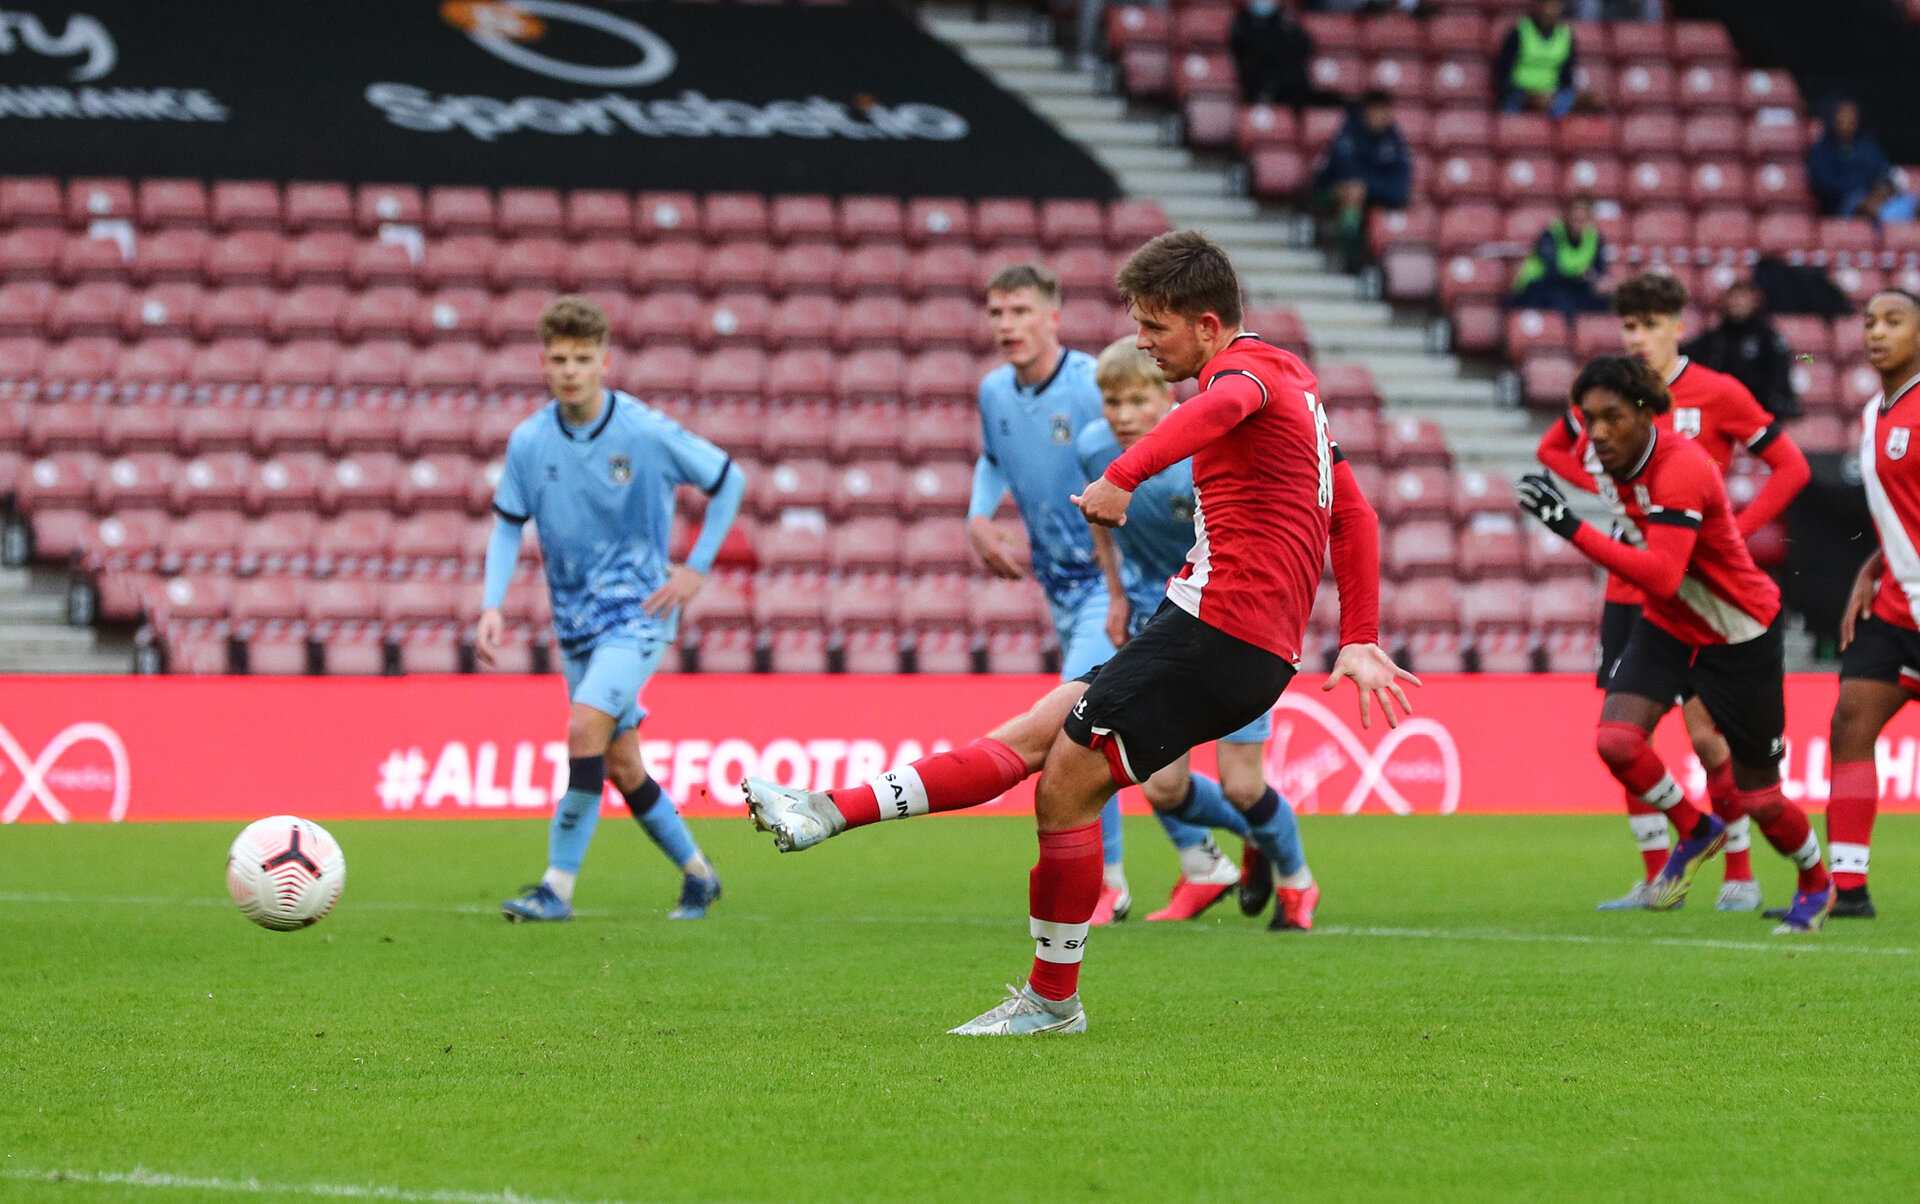 FAYC Coventry - live